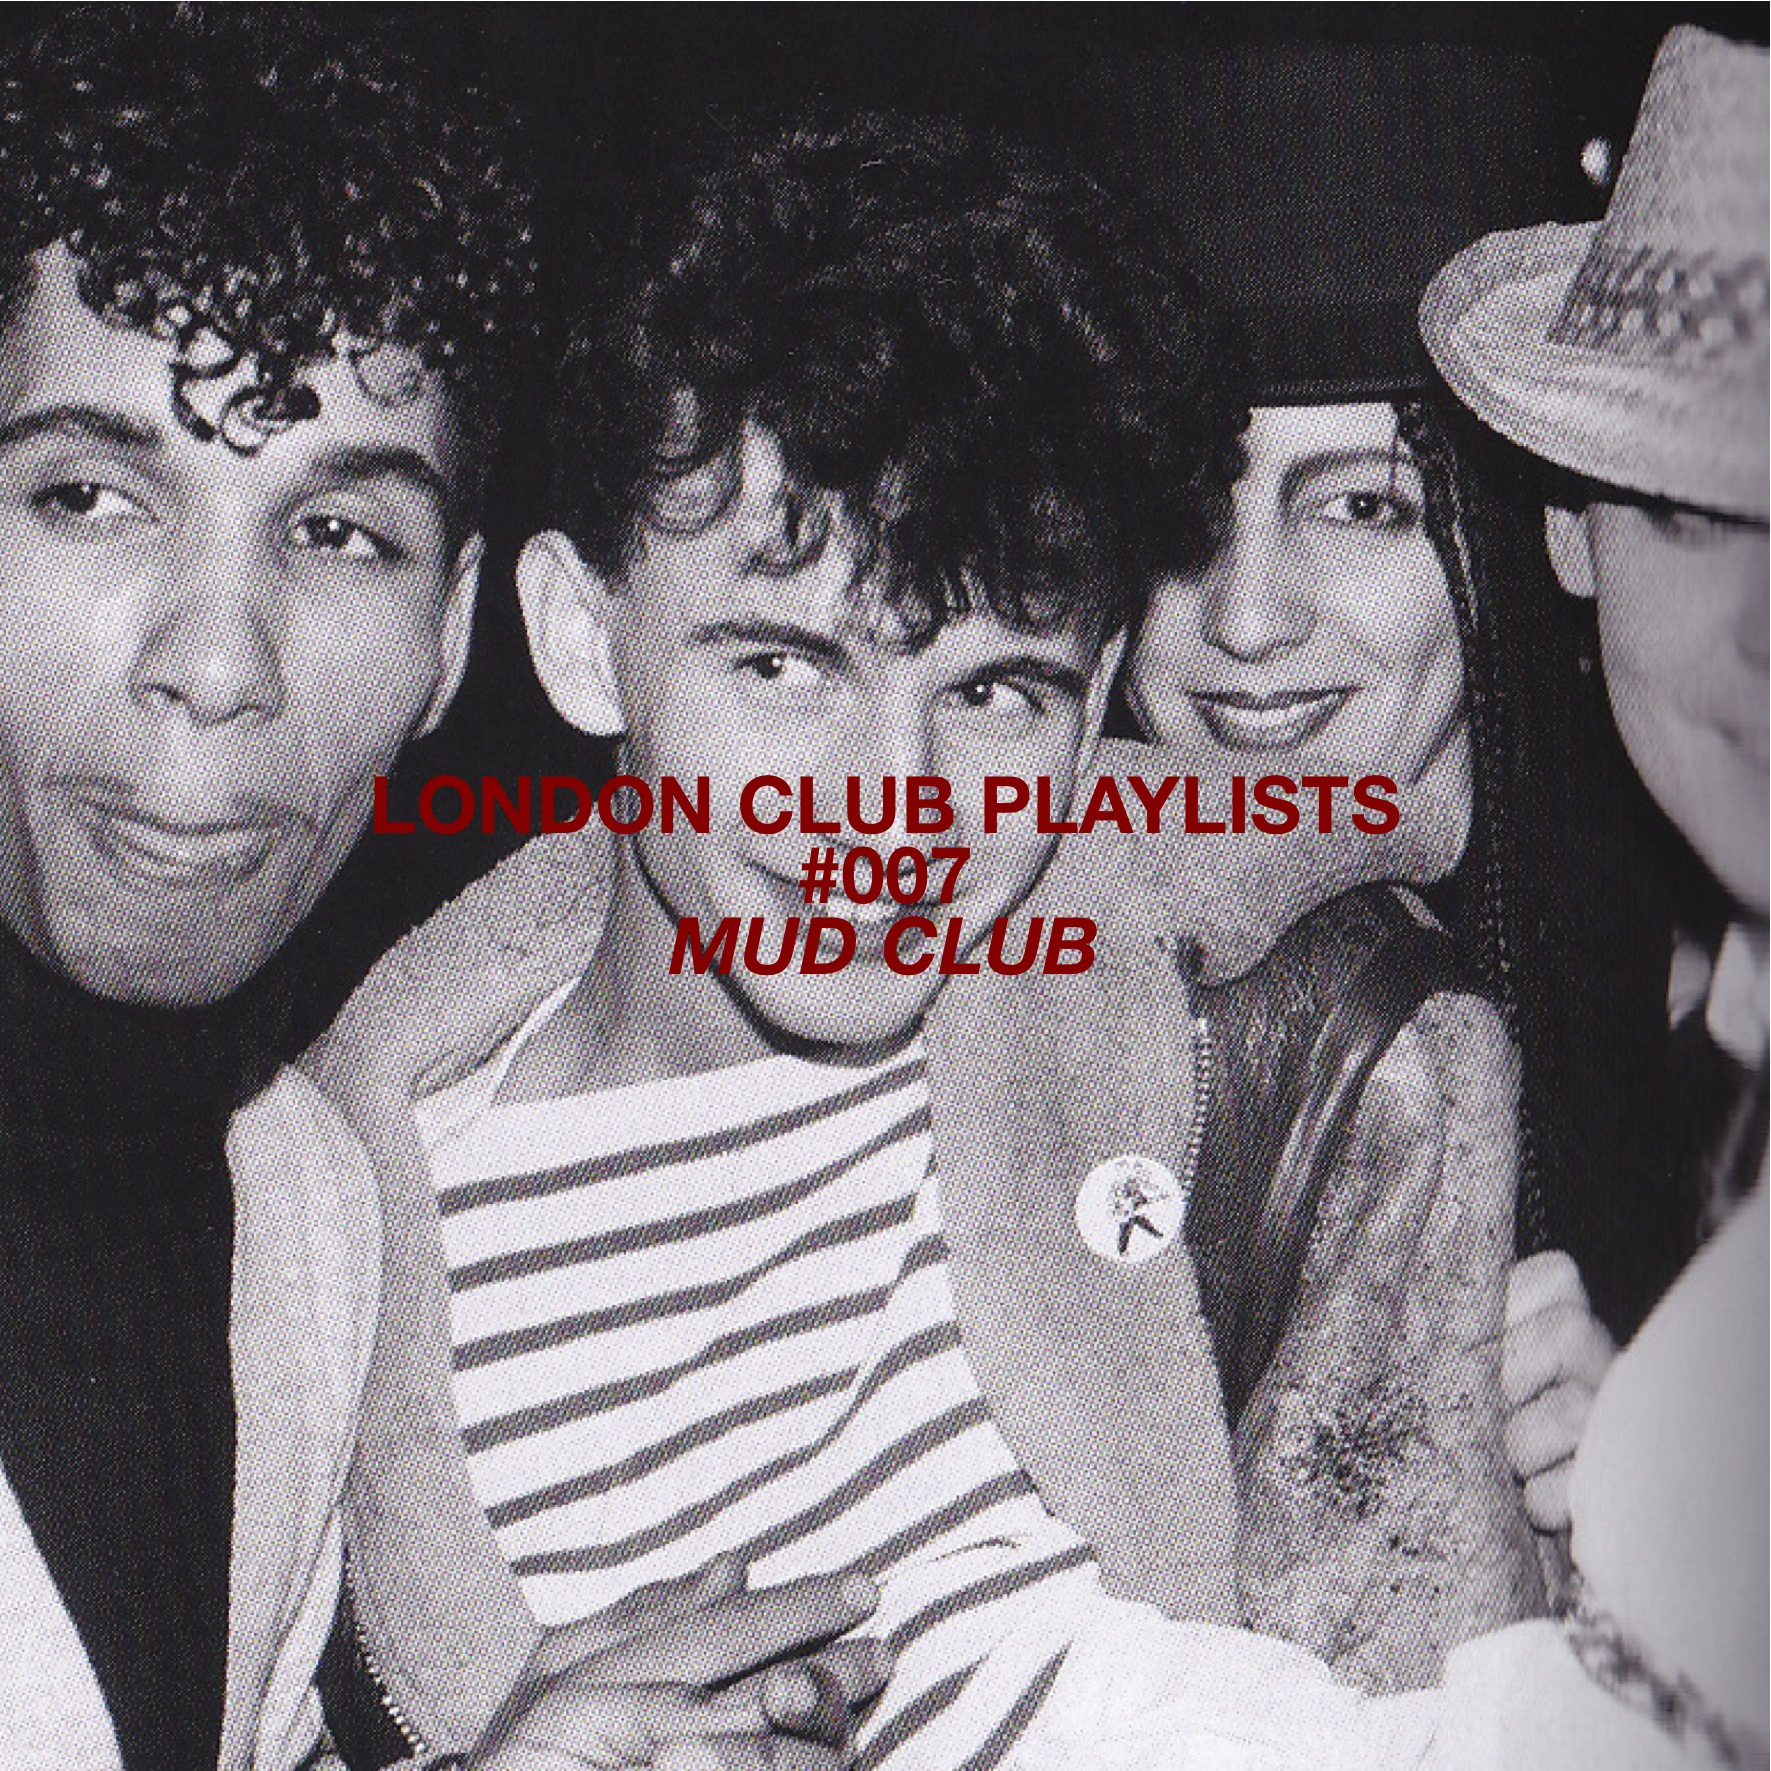 London Club Playlists, Test Pressing, Dr Rob, Mud Club, Phillip Salon, Jay Strongman, Tasty Tim, Mark Moore, Graham Smith, Chris Sullivan, We Can Be Heroes, Unbound